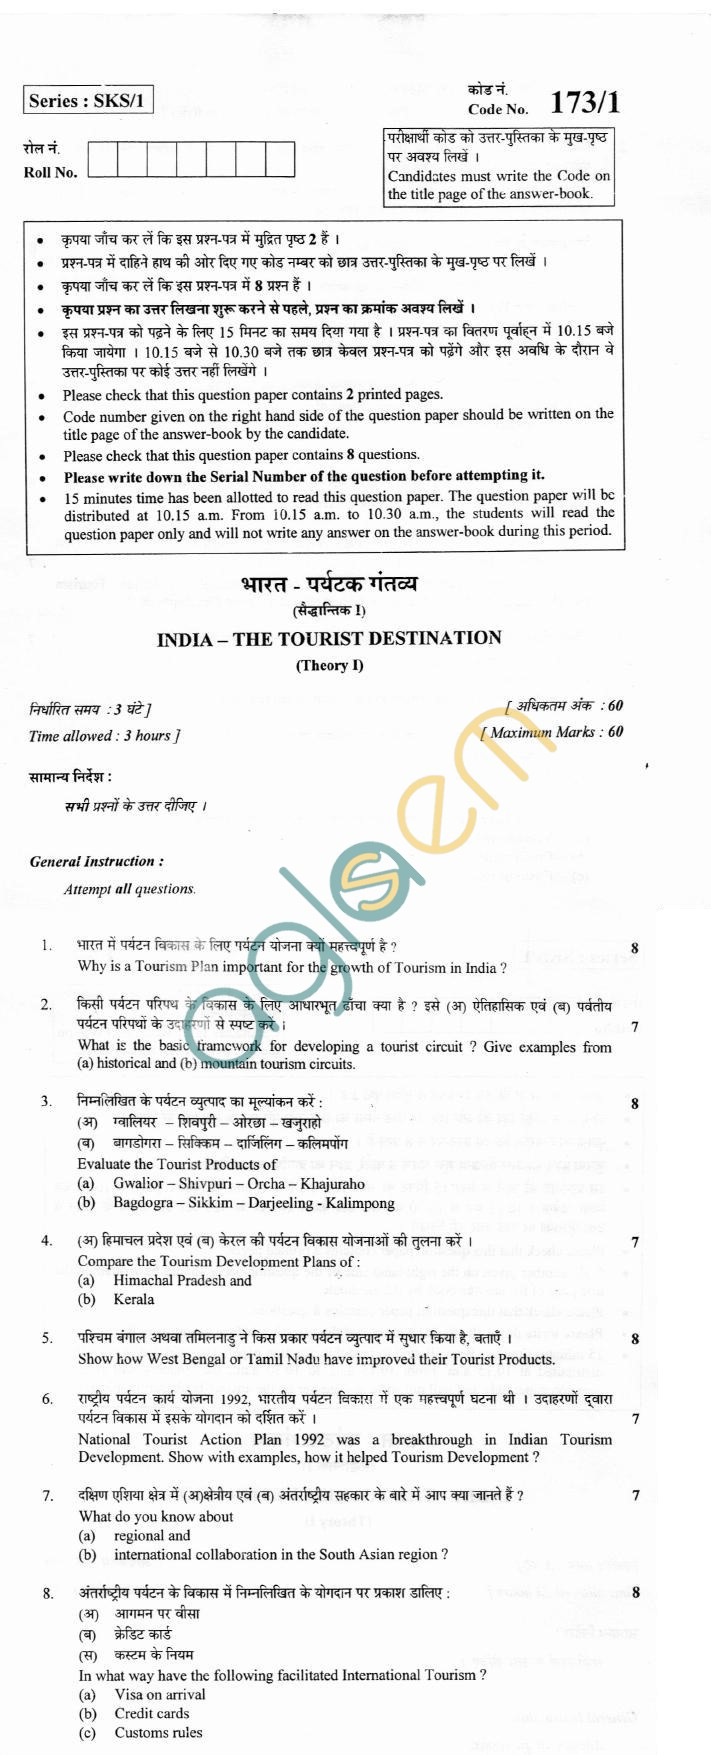 CBSE Board Exam 2013 Class XII Question Paper - India -The Tourist Destination